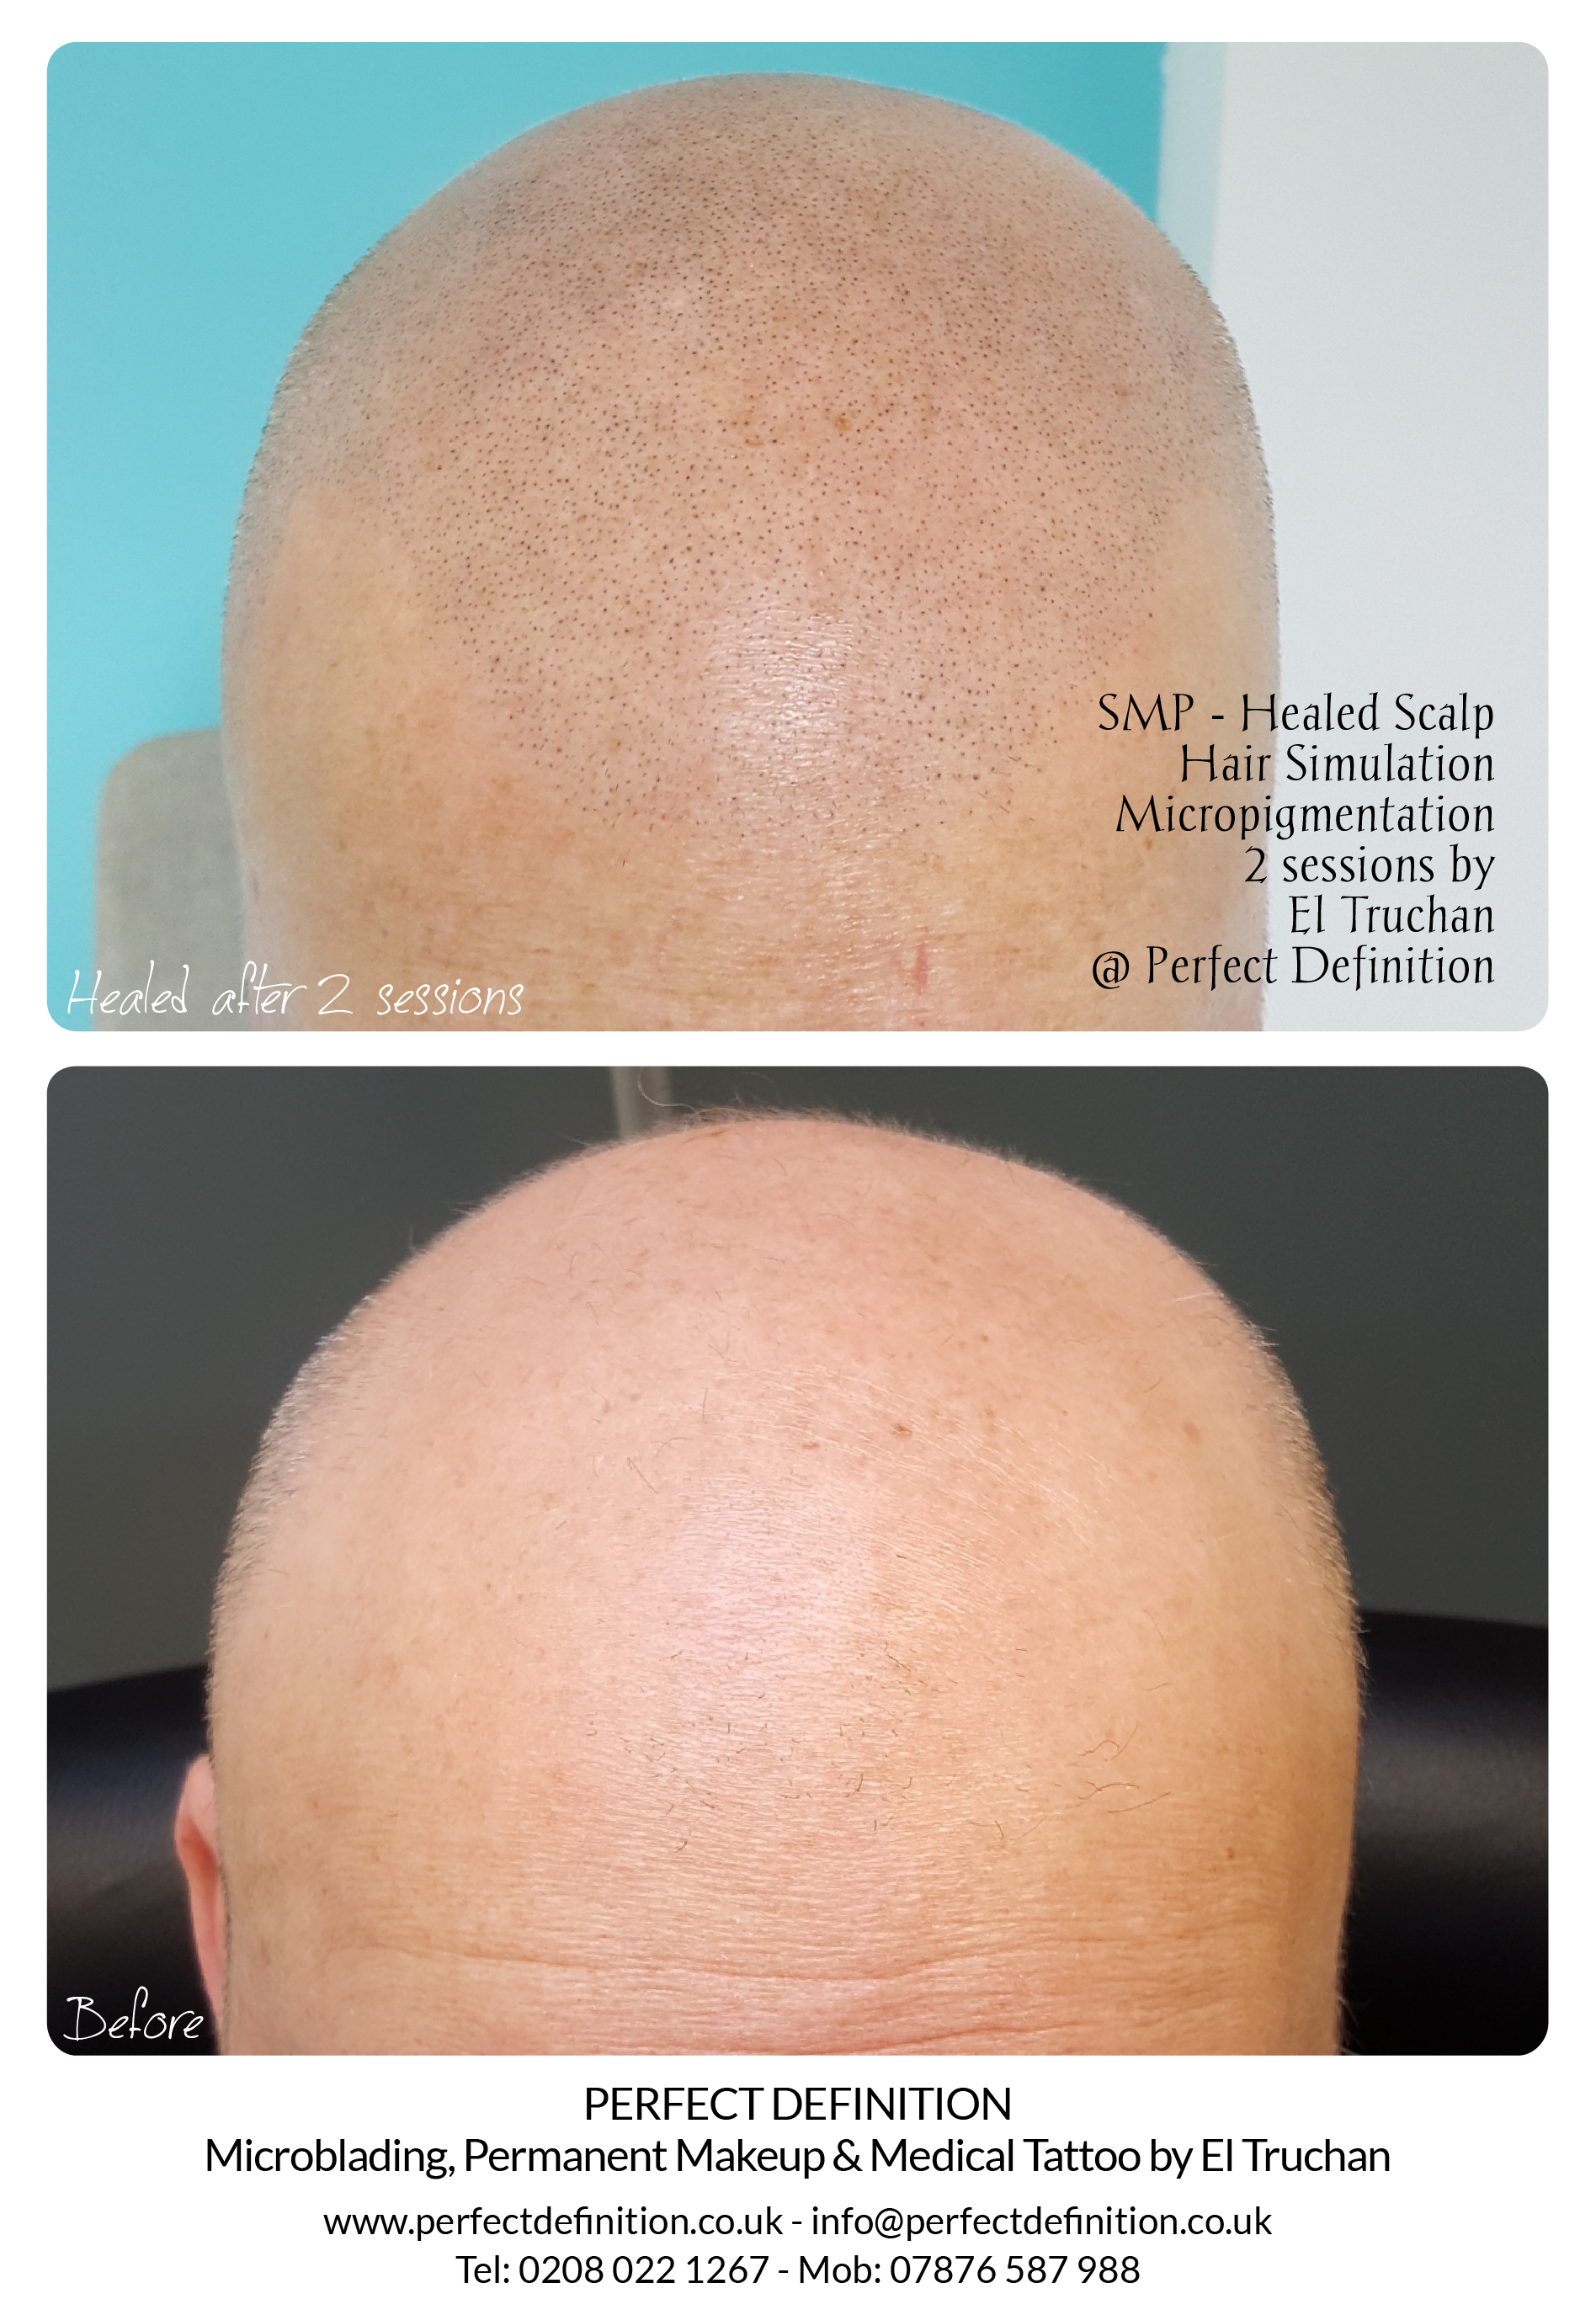 SMP - Healed Blond Scalp Hair Simulation